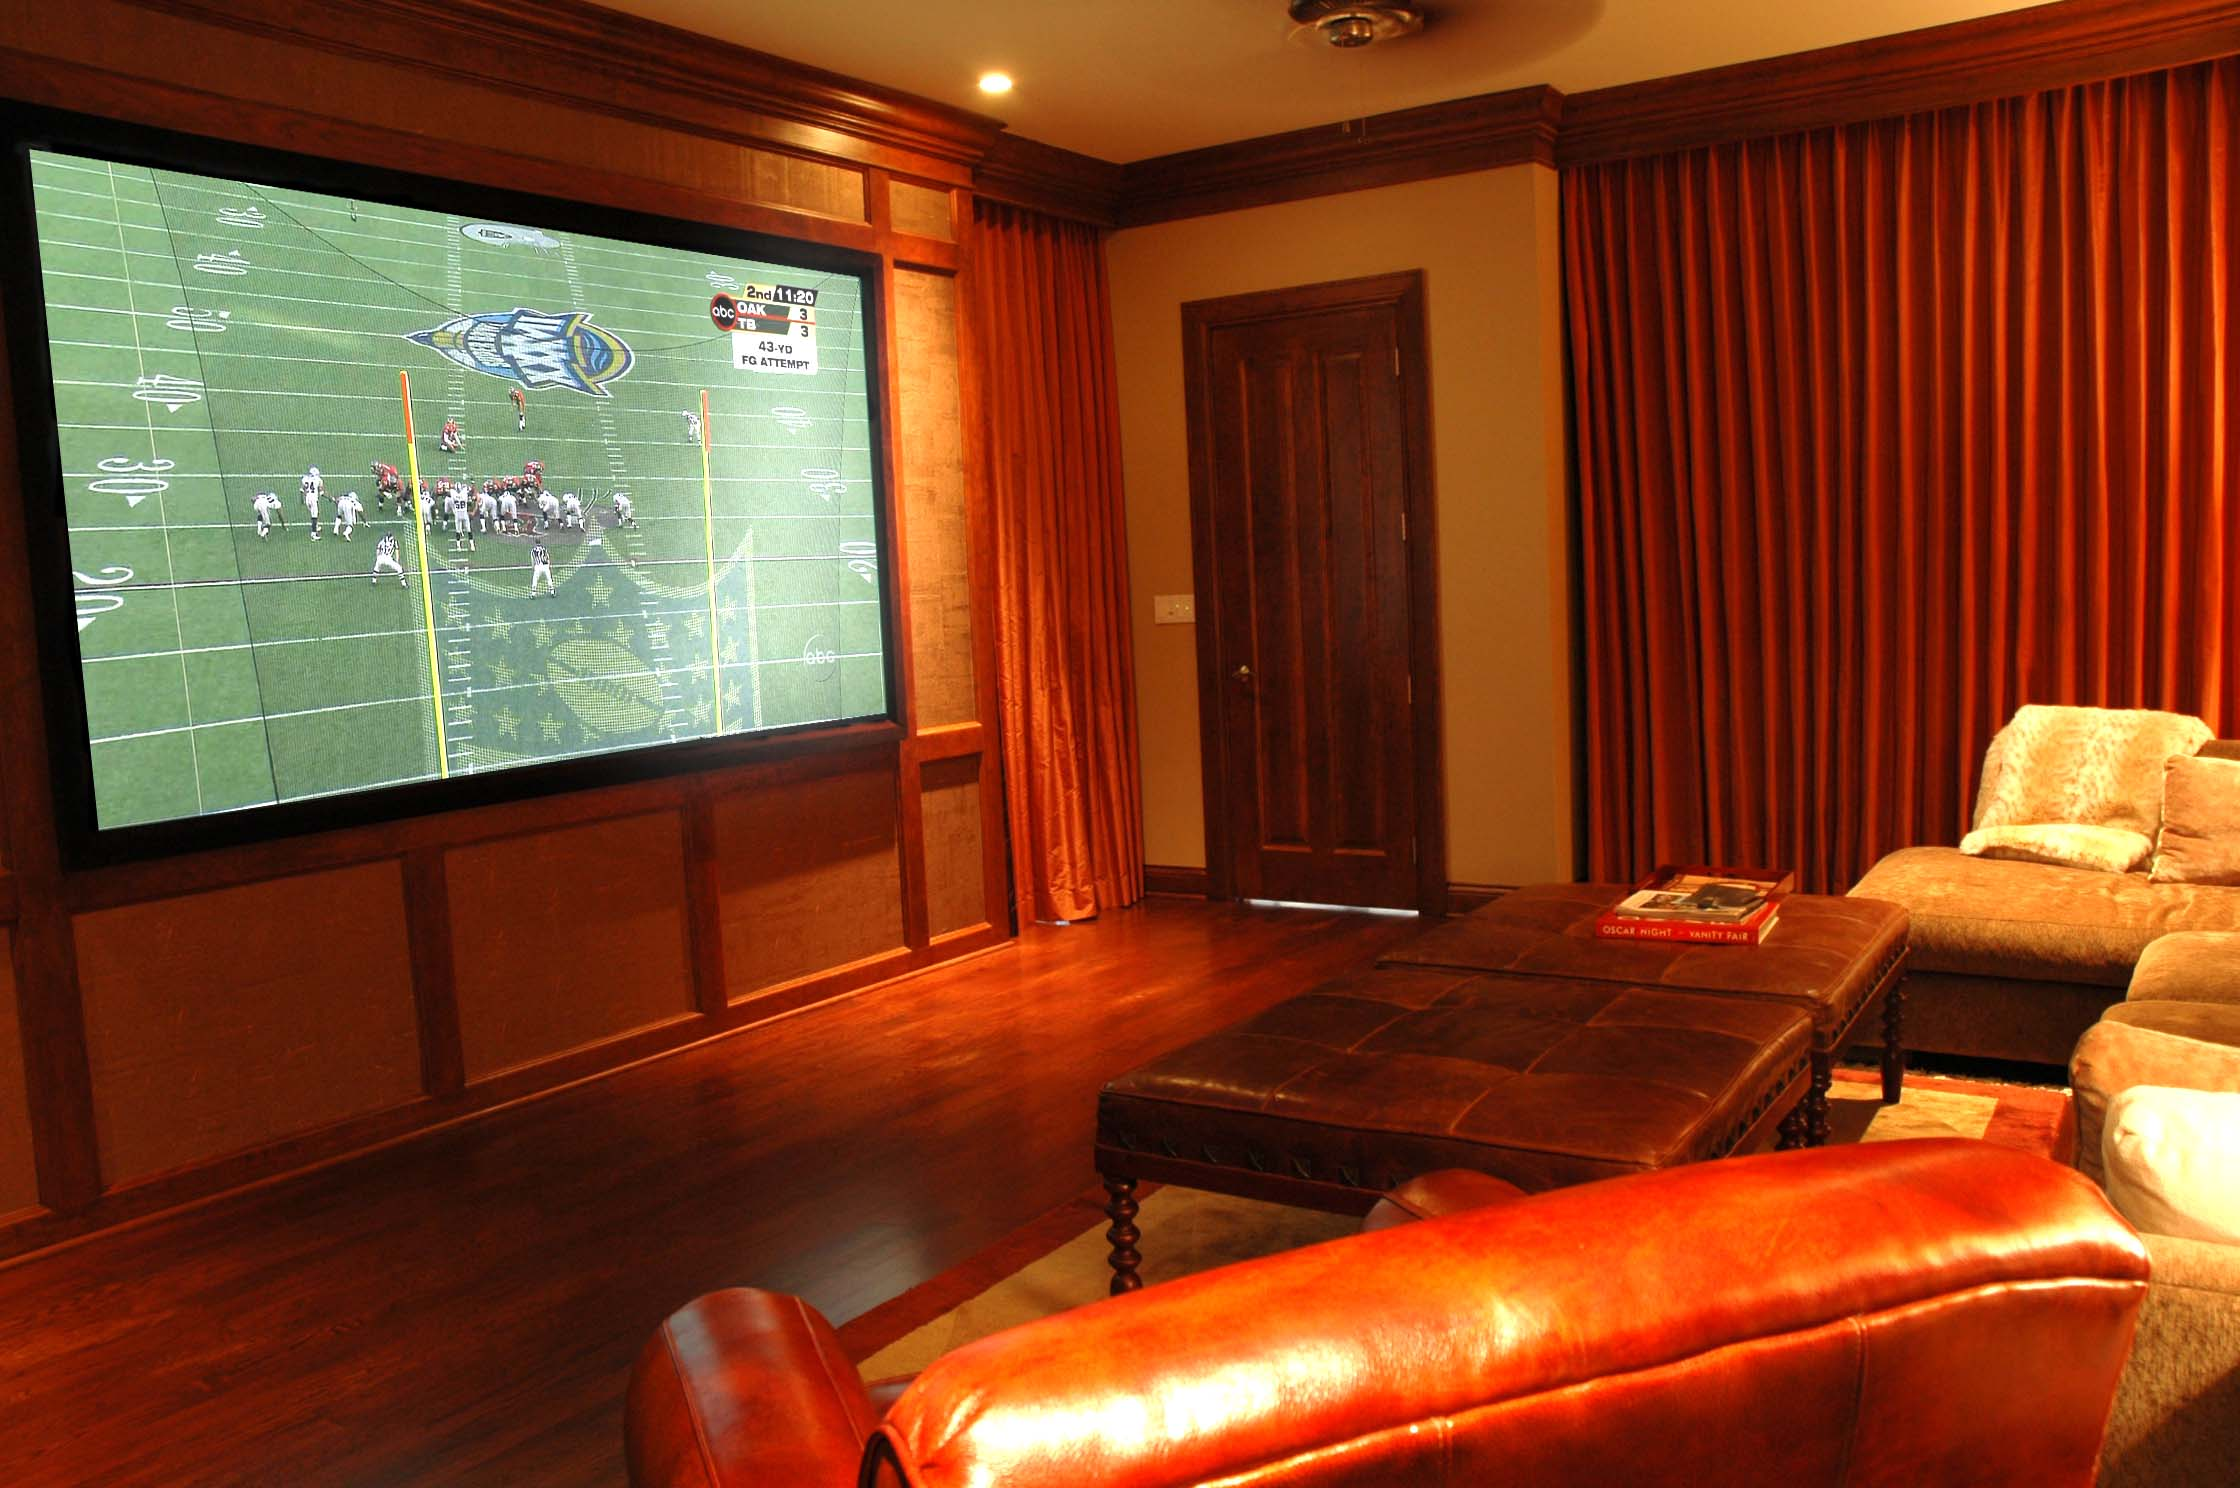 TVs Living Rooms And Projection Screen Tv On Pinterest